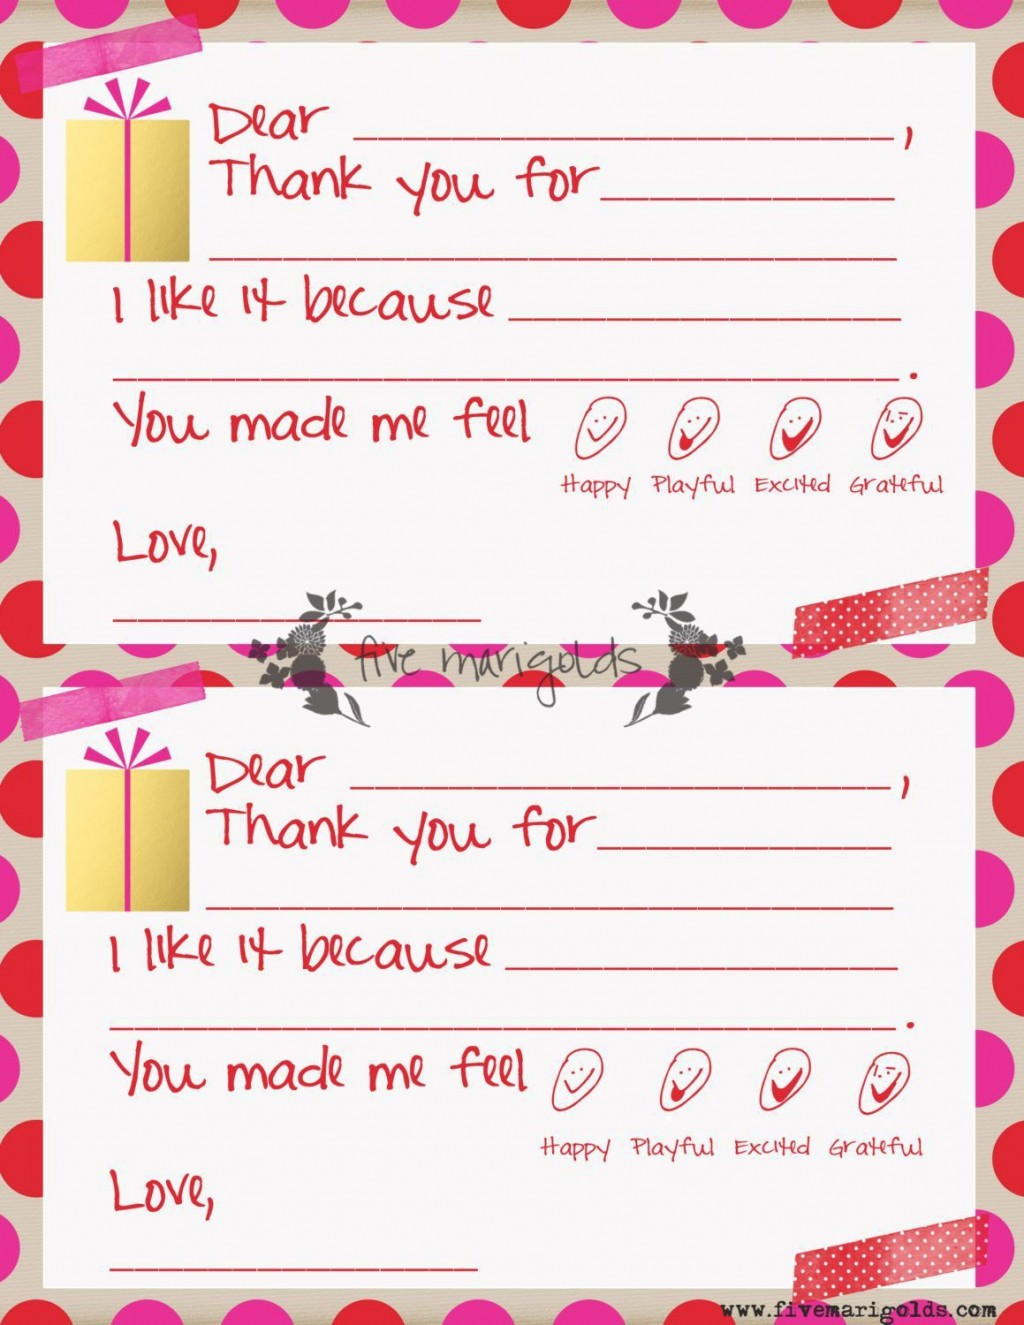 006 Remarkable Christma Thank You Note Template Free Concept  Letter CardLarge